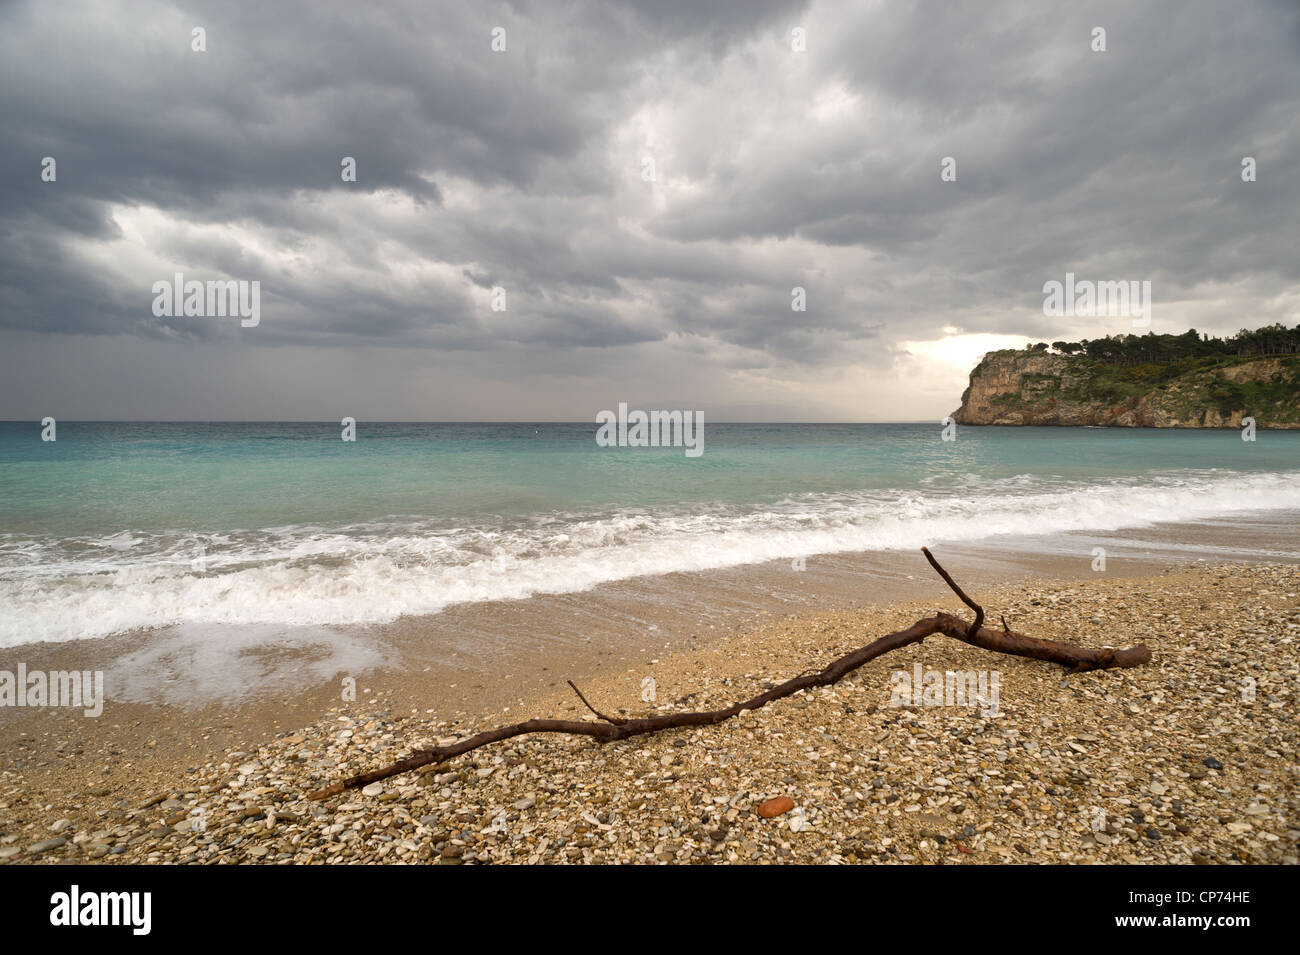 Branch washed up at beach Sicily, Italy - Stock Image